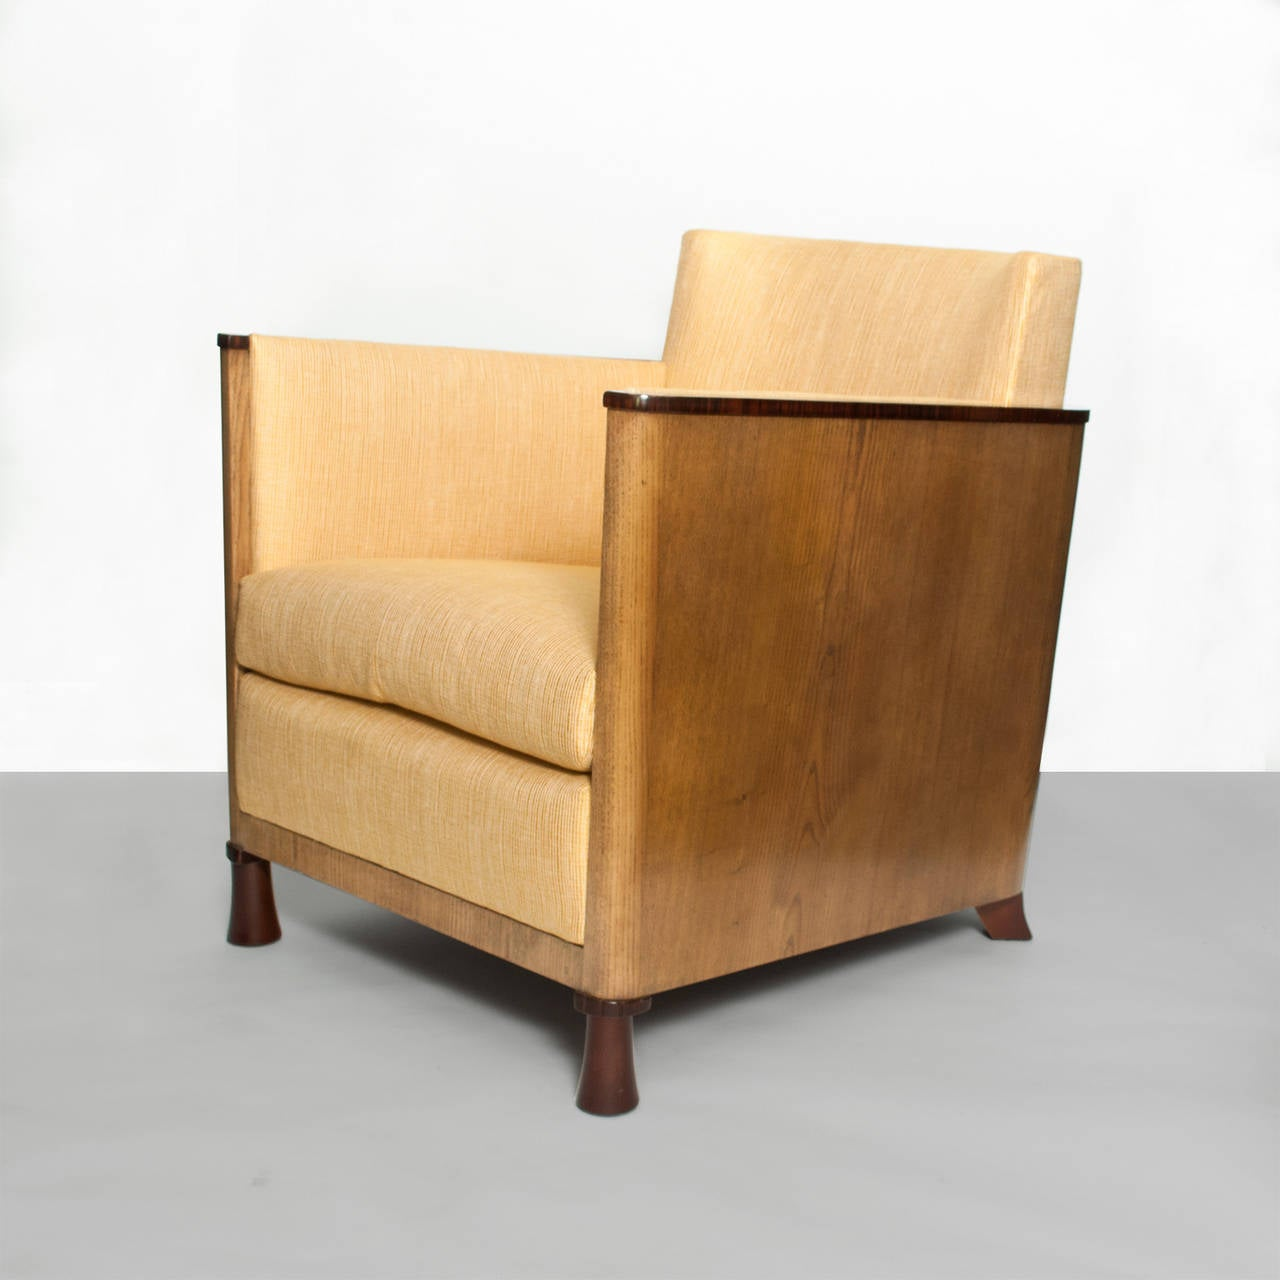 Scandinavian Modern Swedish Art Deco Lounge Chair with Veneered Sides and Back In Excellent Condition For Sale In New York, NY